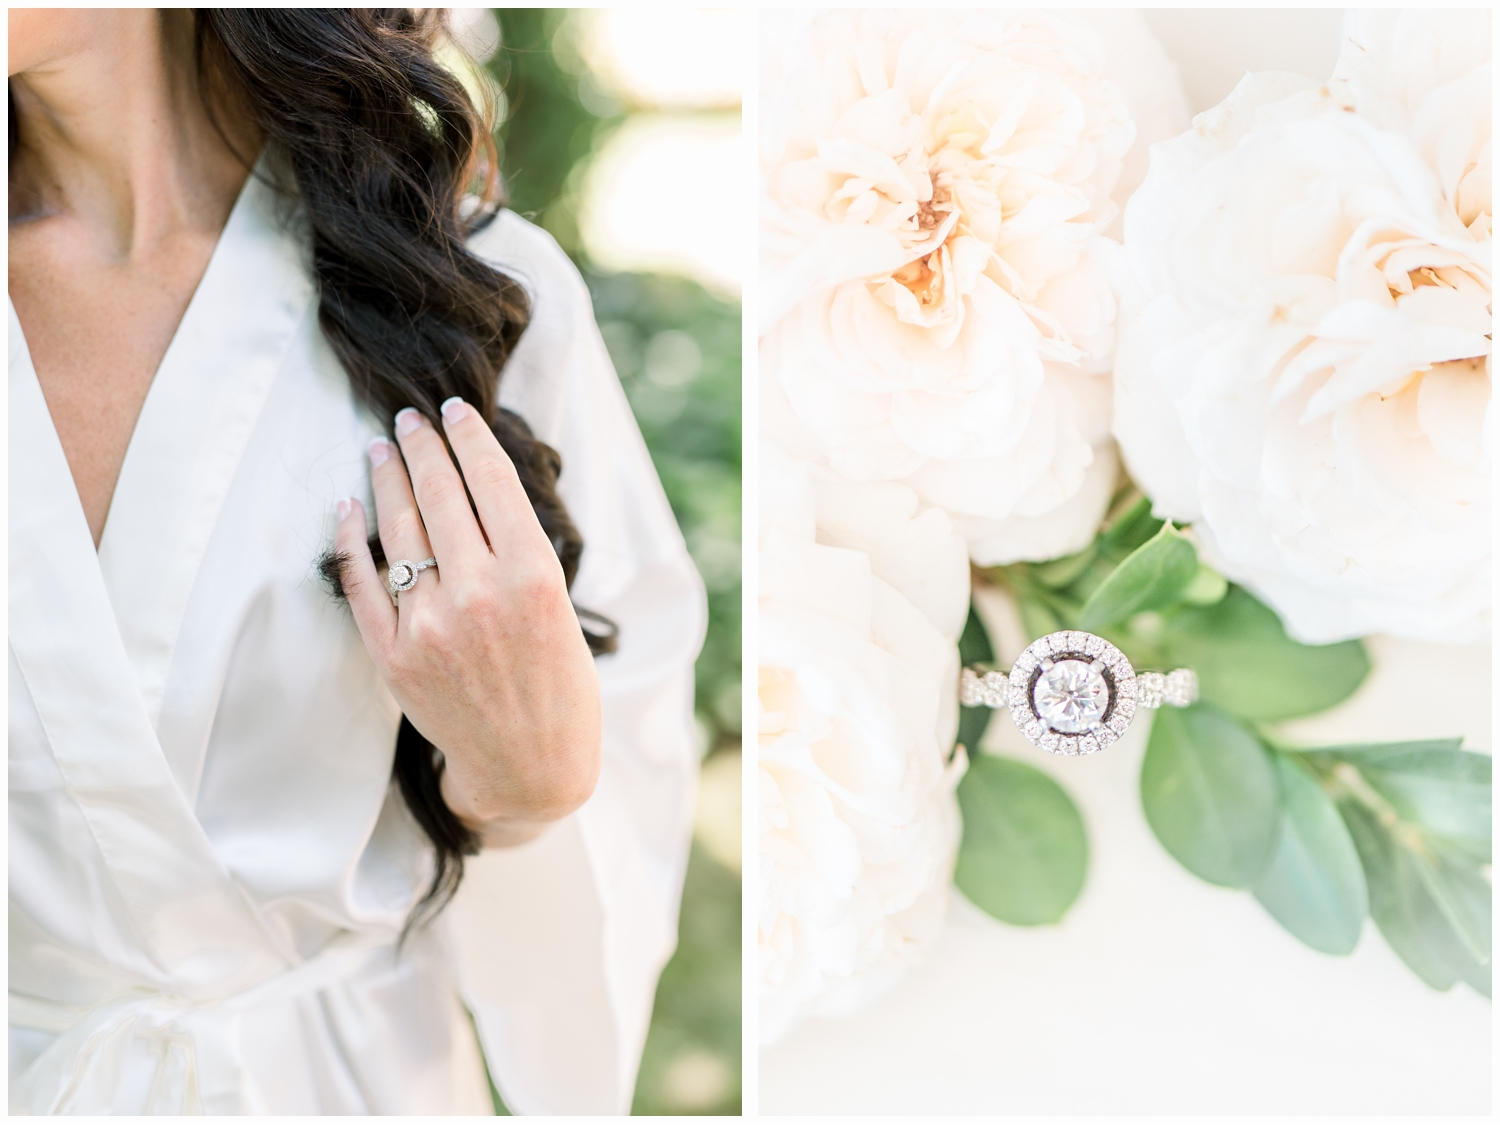 bride with engagement ring on finger